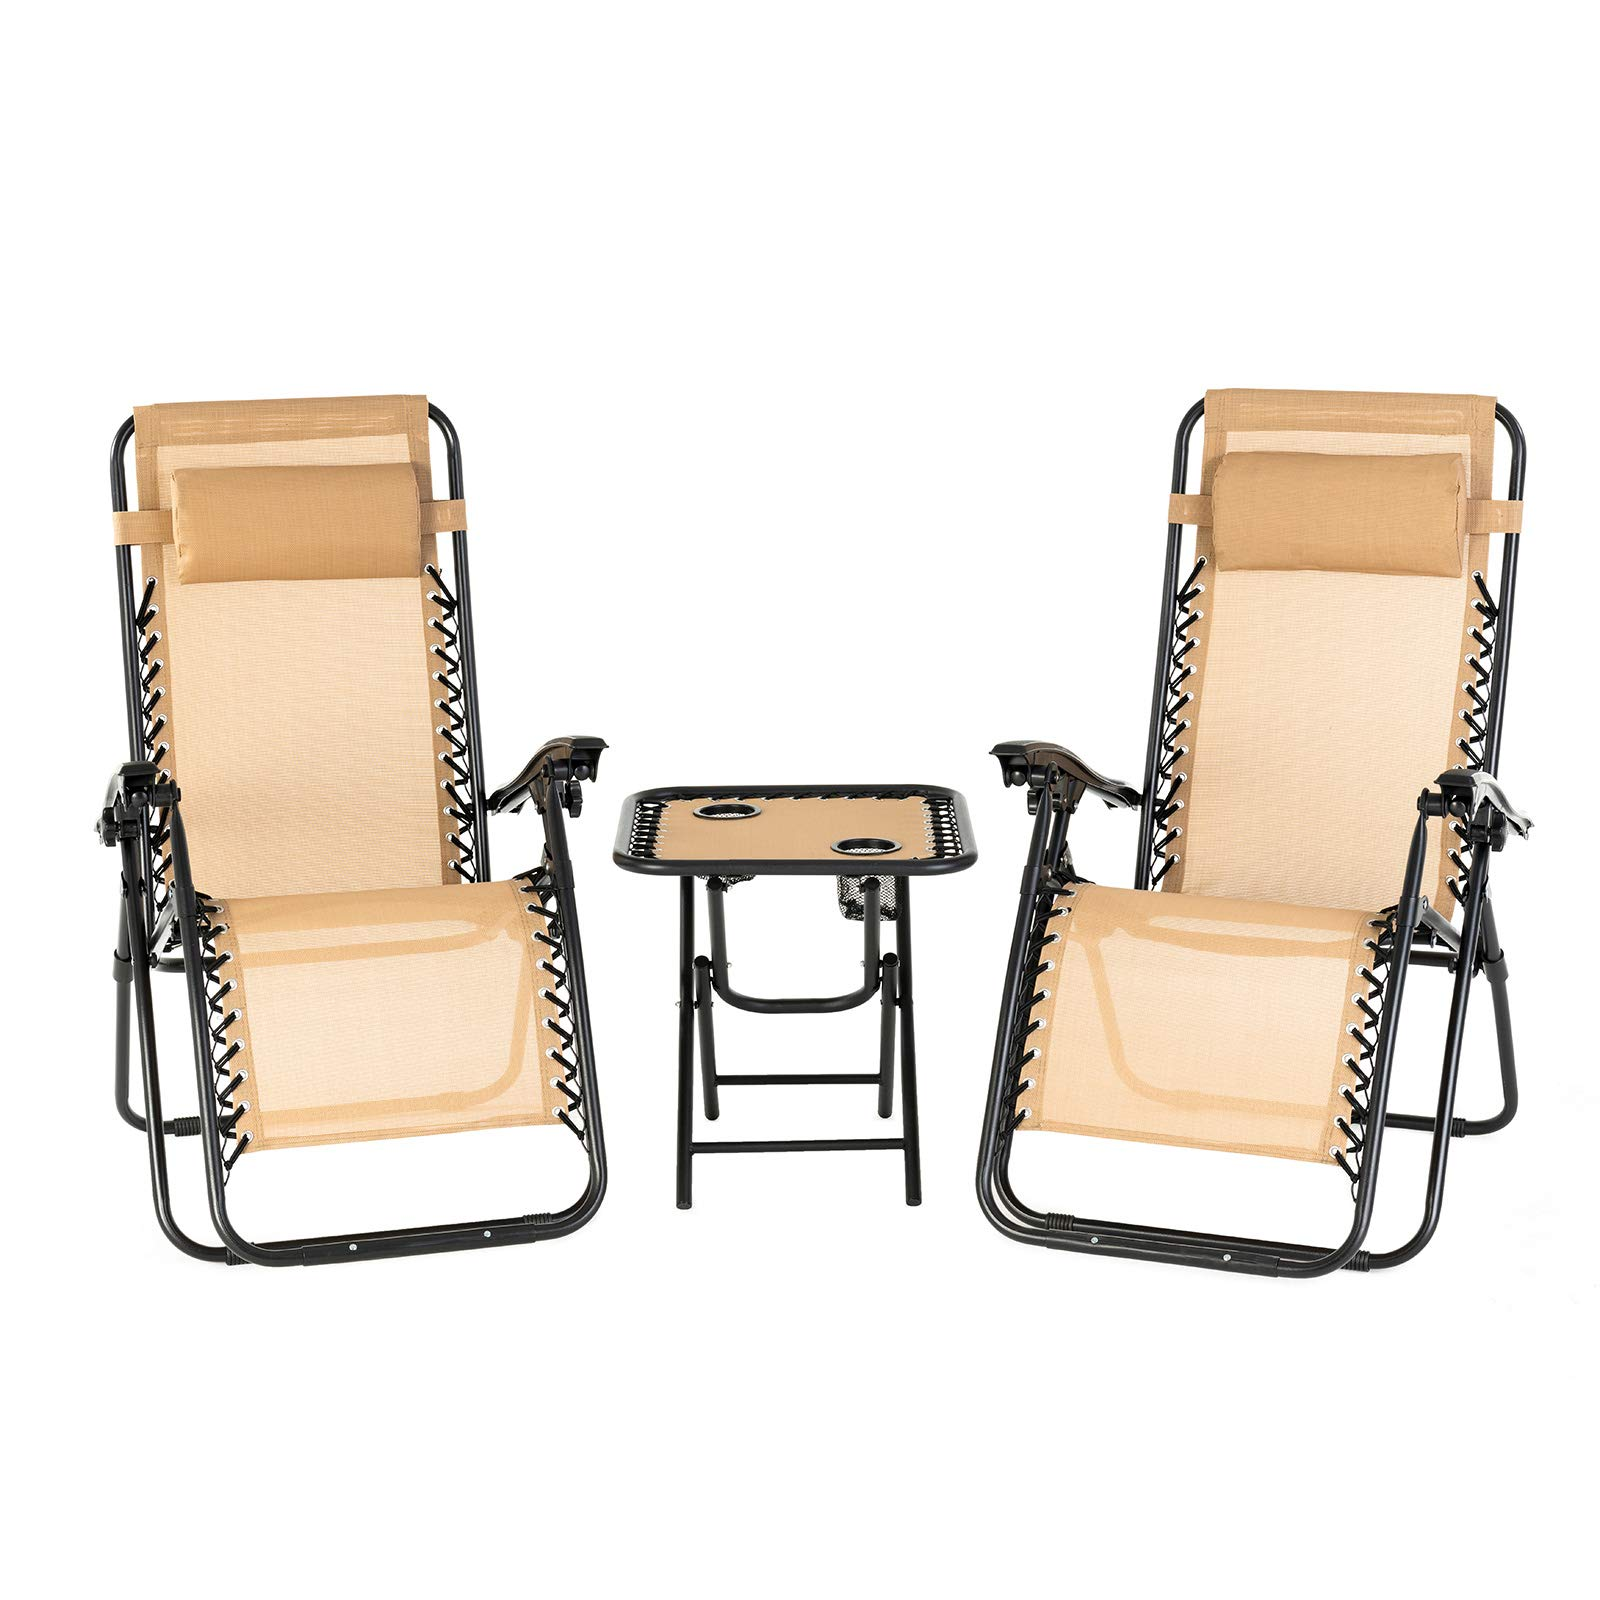 mecor 3PC Zero Gravity Lounge Chairs Adjustable Recliner Patio Chairs Folding Recliner with Folding Table Outdoor Yard Beach (Beige)